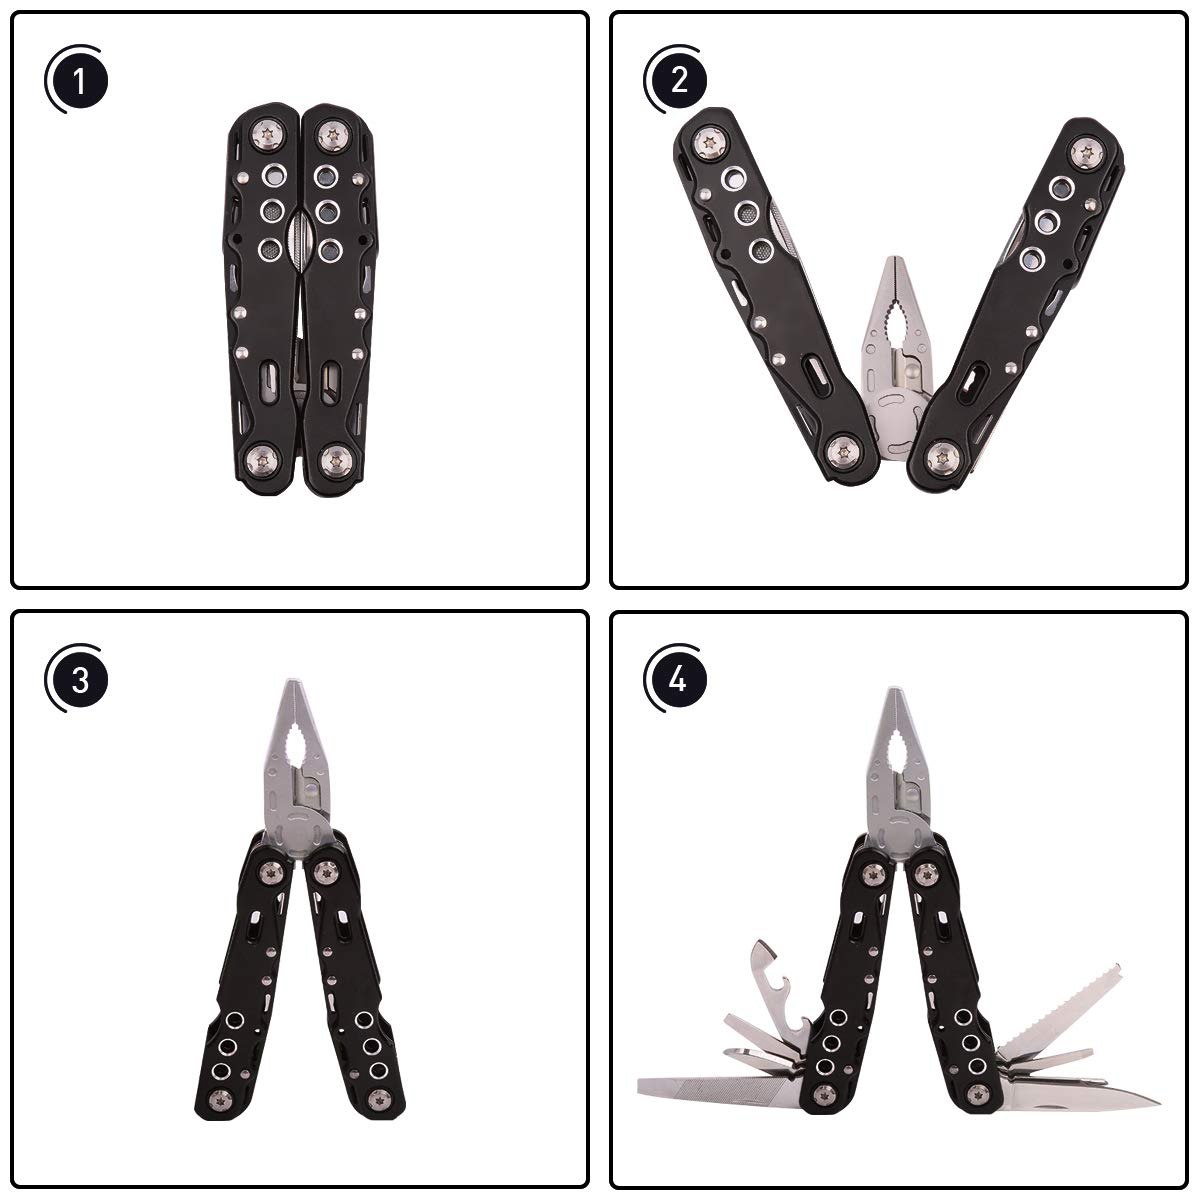 15 in 1 Multitool Plier, DeJAVU Potable Stainless Steel Multitool Knife, Plier, Screwdriver, Bottle Opener for Outdoor Survival,Camping,Fishing,Hiking,Hunting